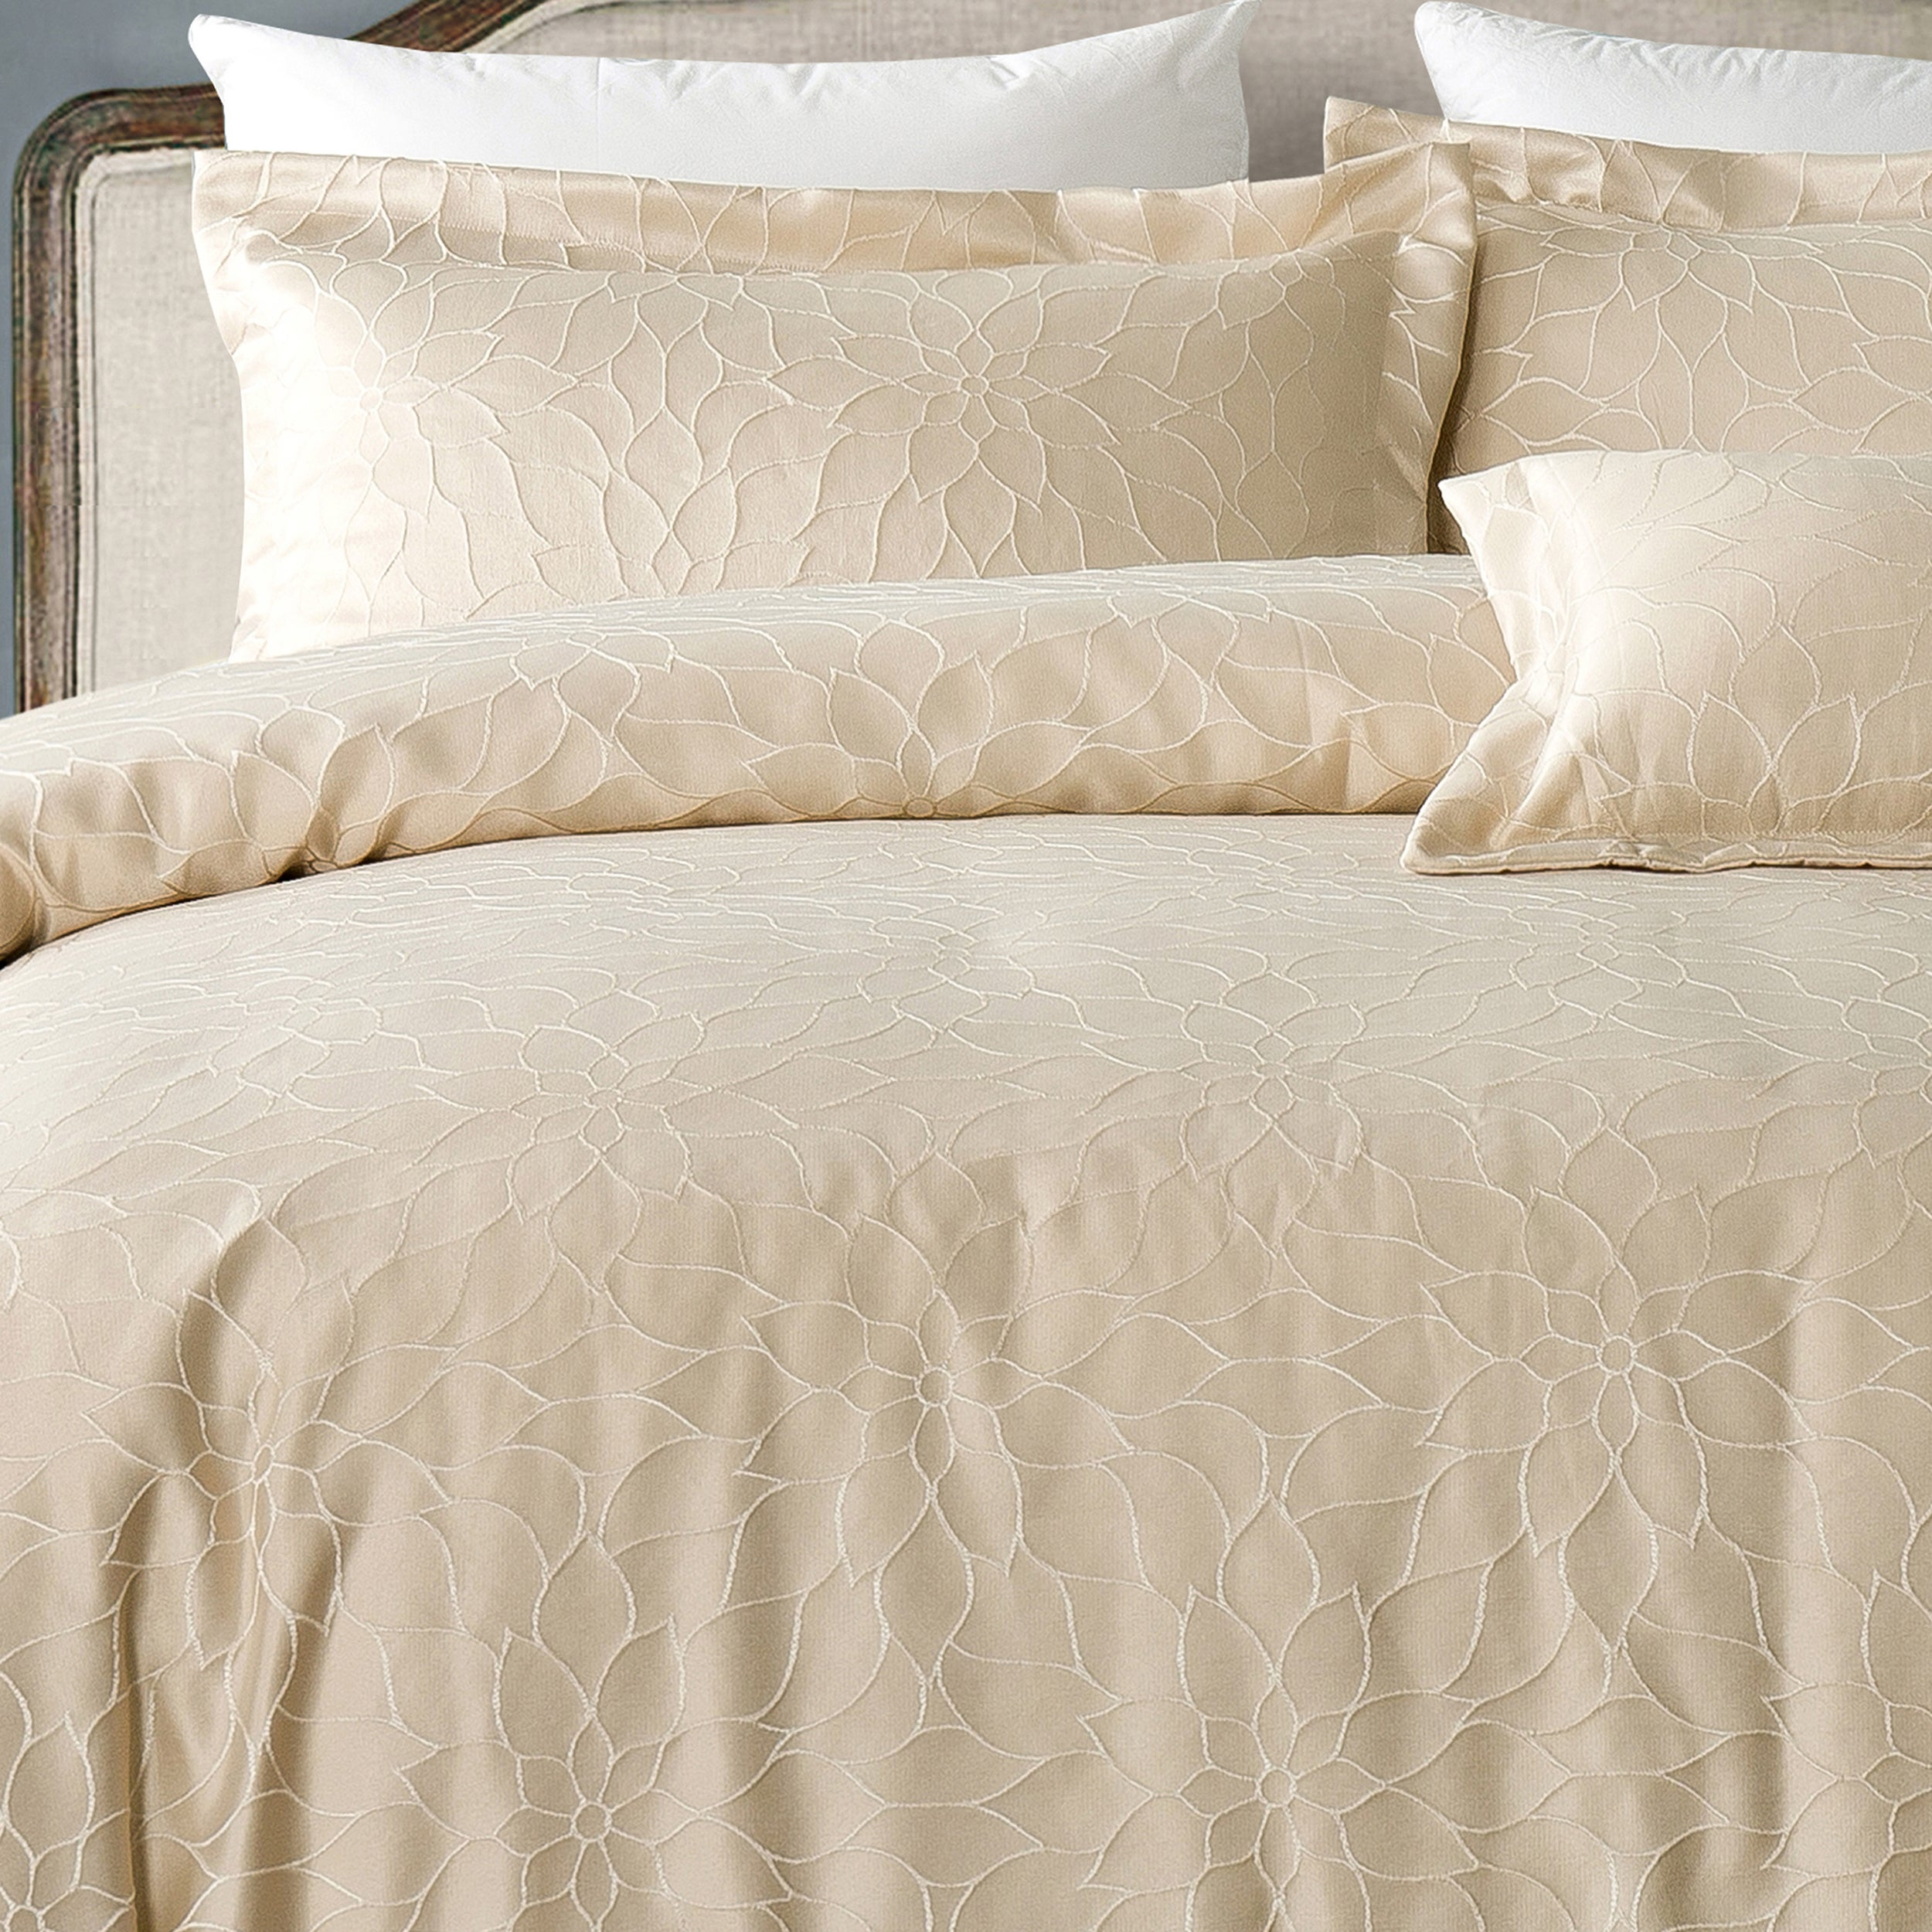 shipping bath bedding overstock free capprice piece hotel today comforter product sets set